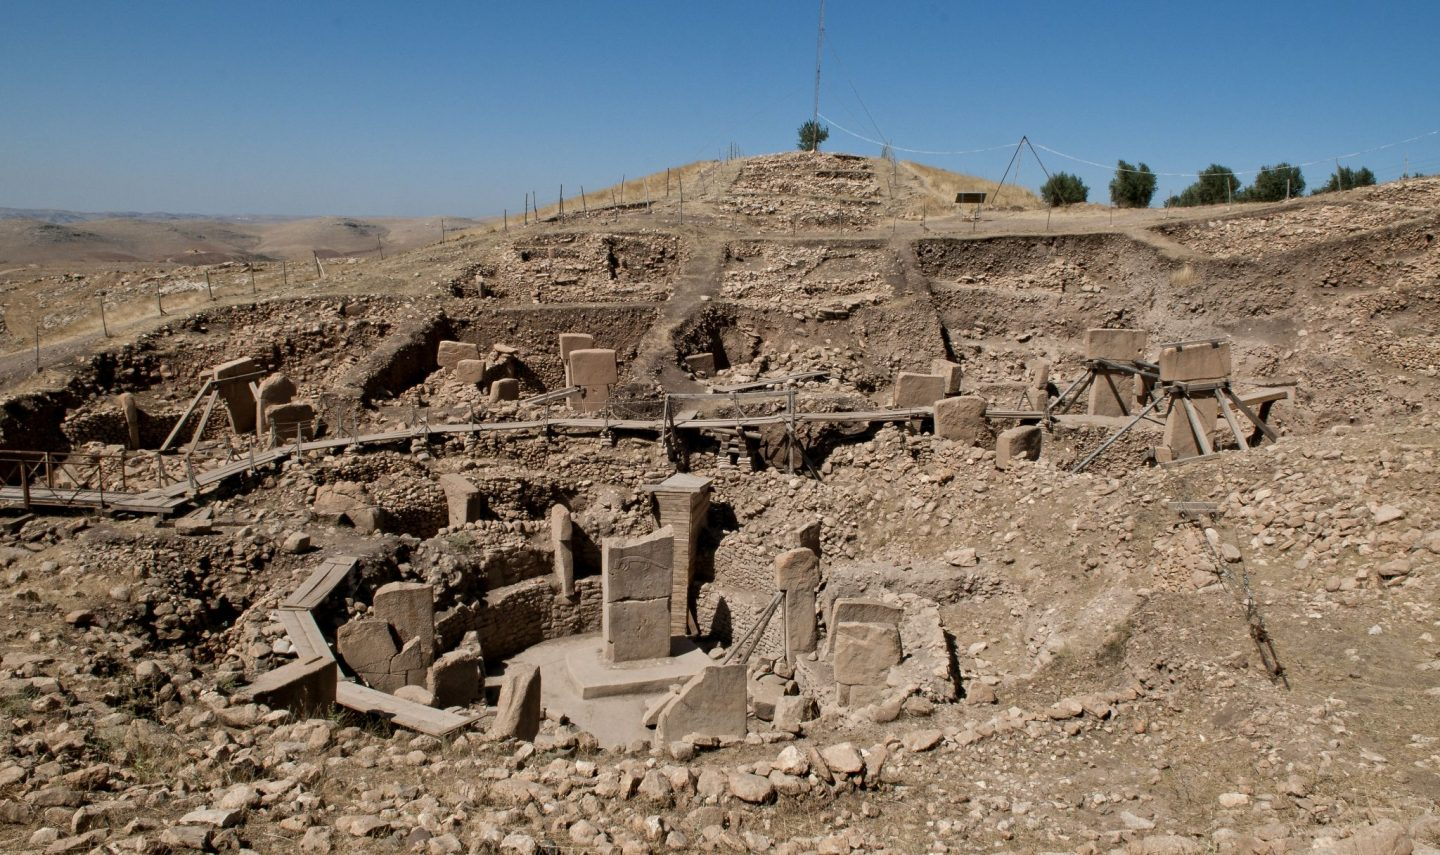 Gobekli Tepe: An Ancient Structure That Challenges Mainstream History